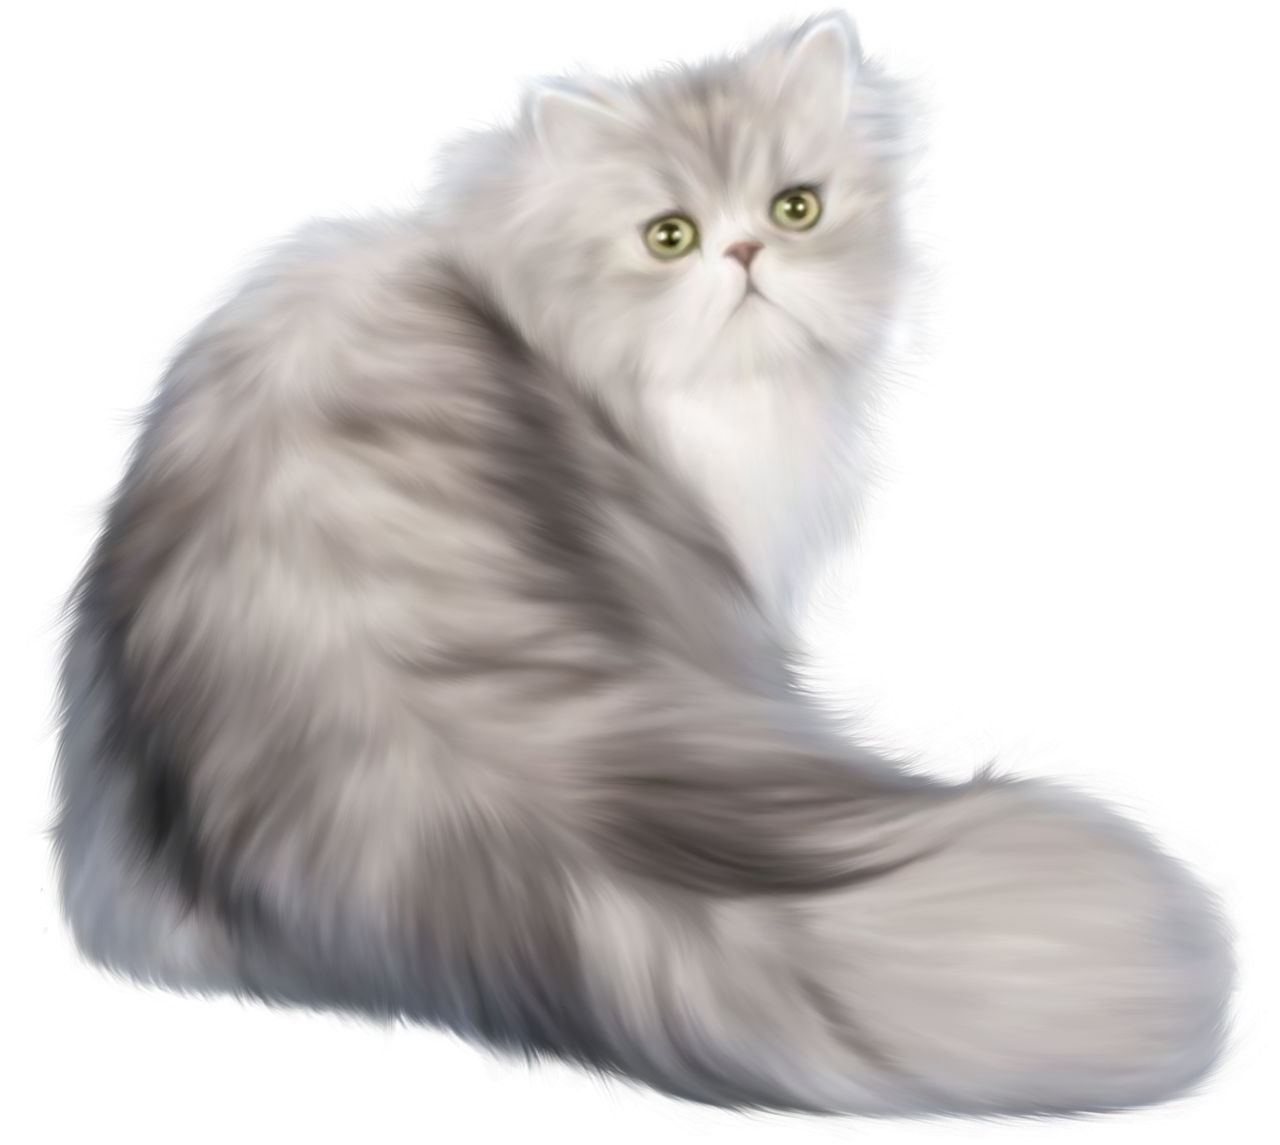 cotton, pile cat png